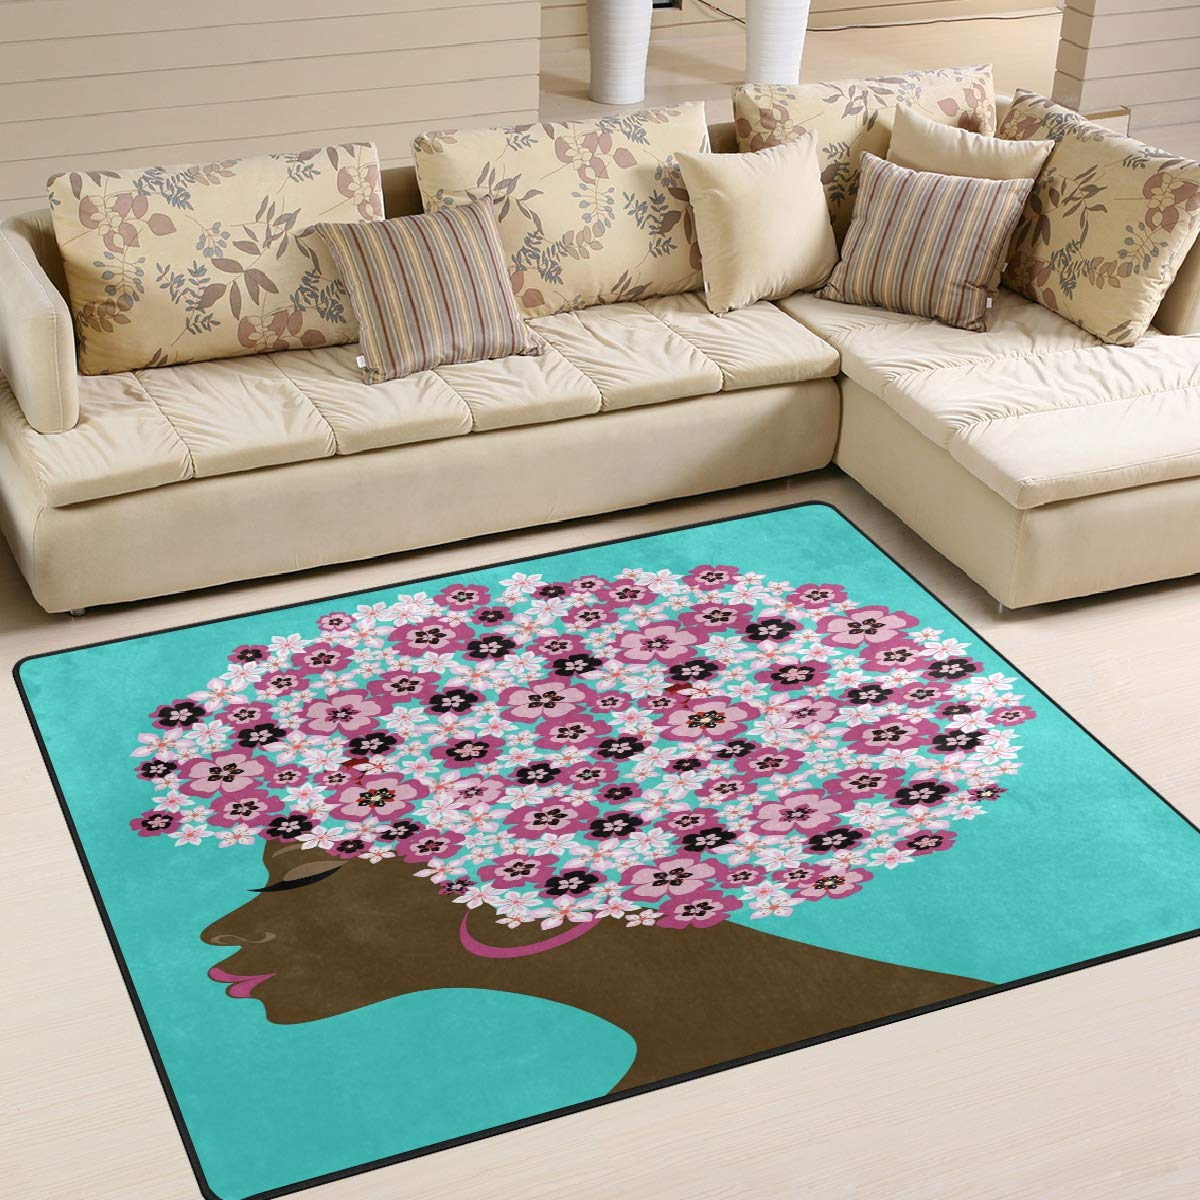 ALAZA American Beauty Woman with Spring Decorated Indoor Modern Area Rug 4' x 5', Dining Room Home Bedroom Carpet Floor Mat Nursery Rug Room Mat